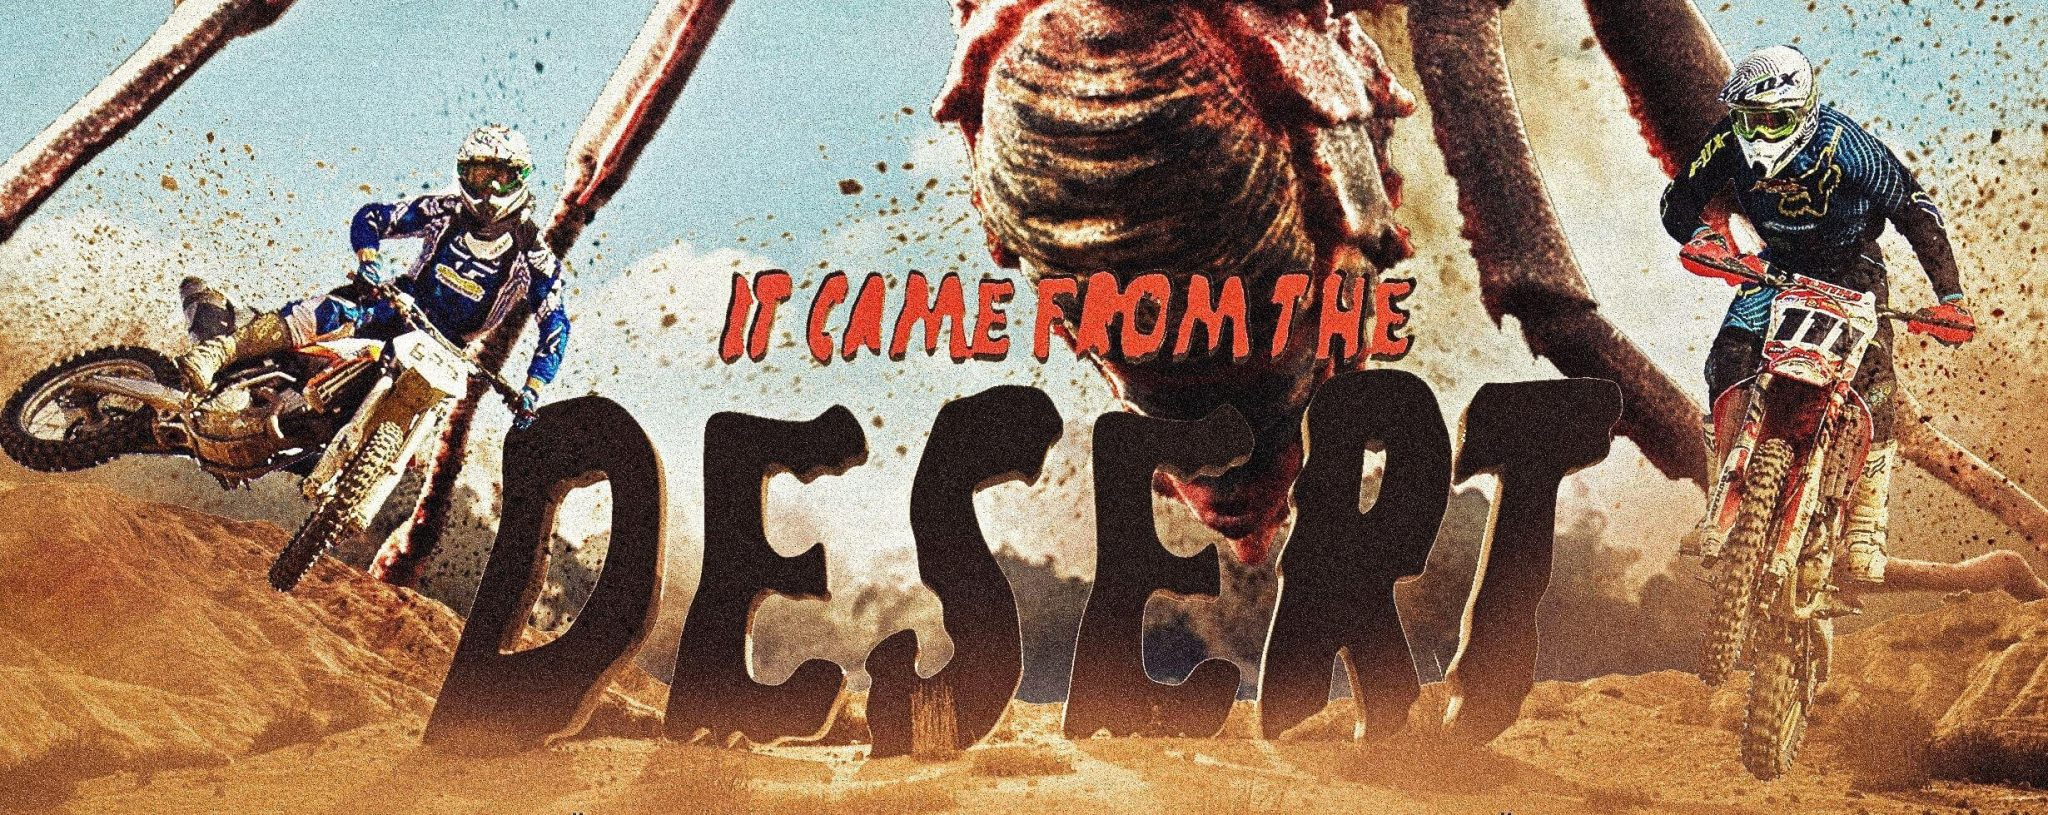 It Came From The Desert With Another New Trailer Dread Central